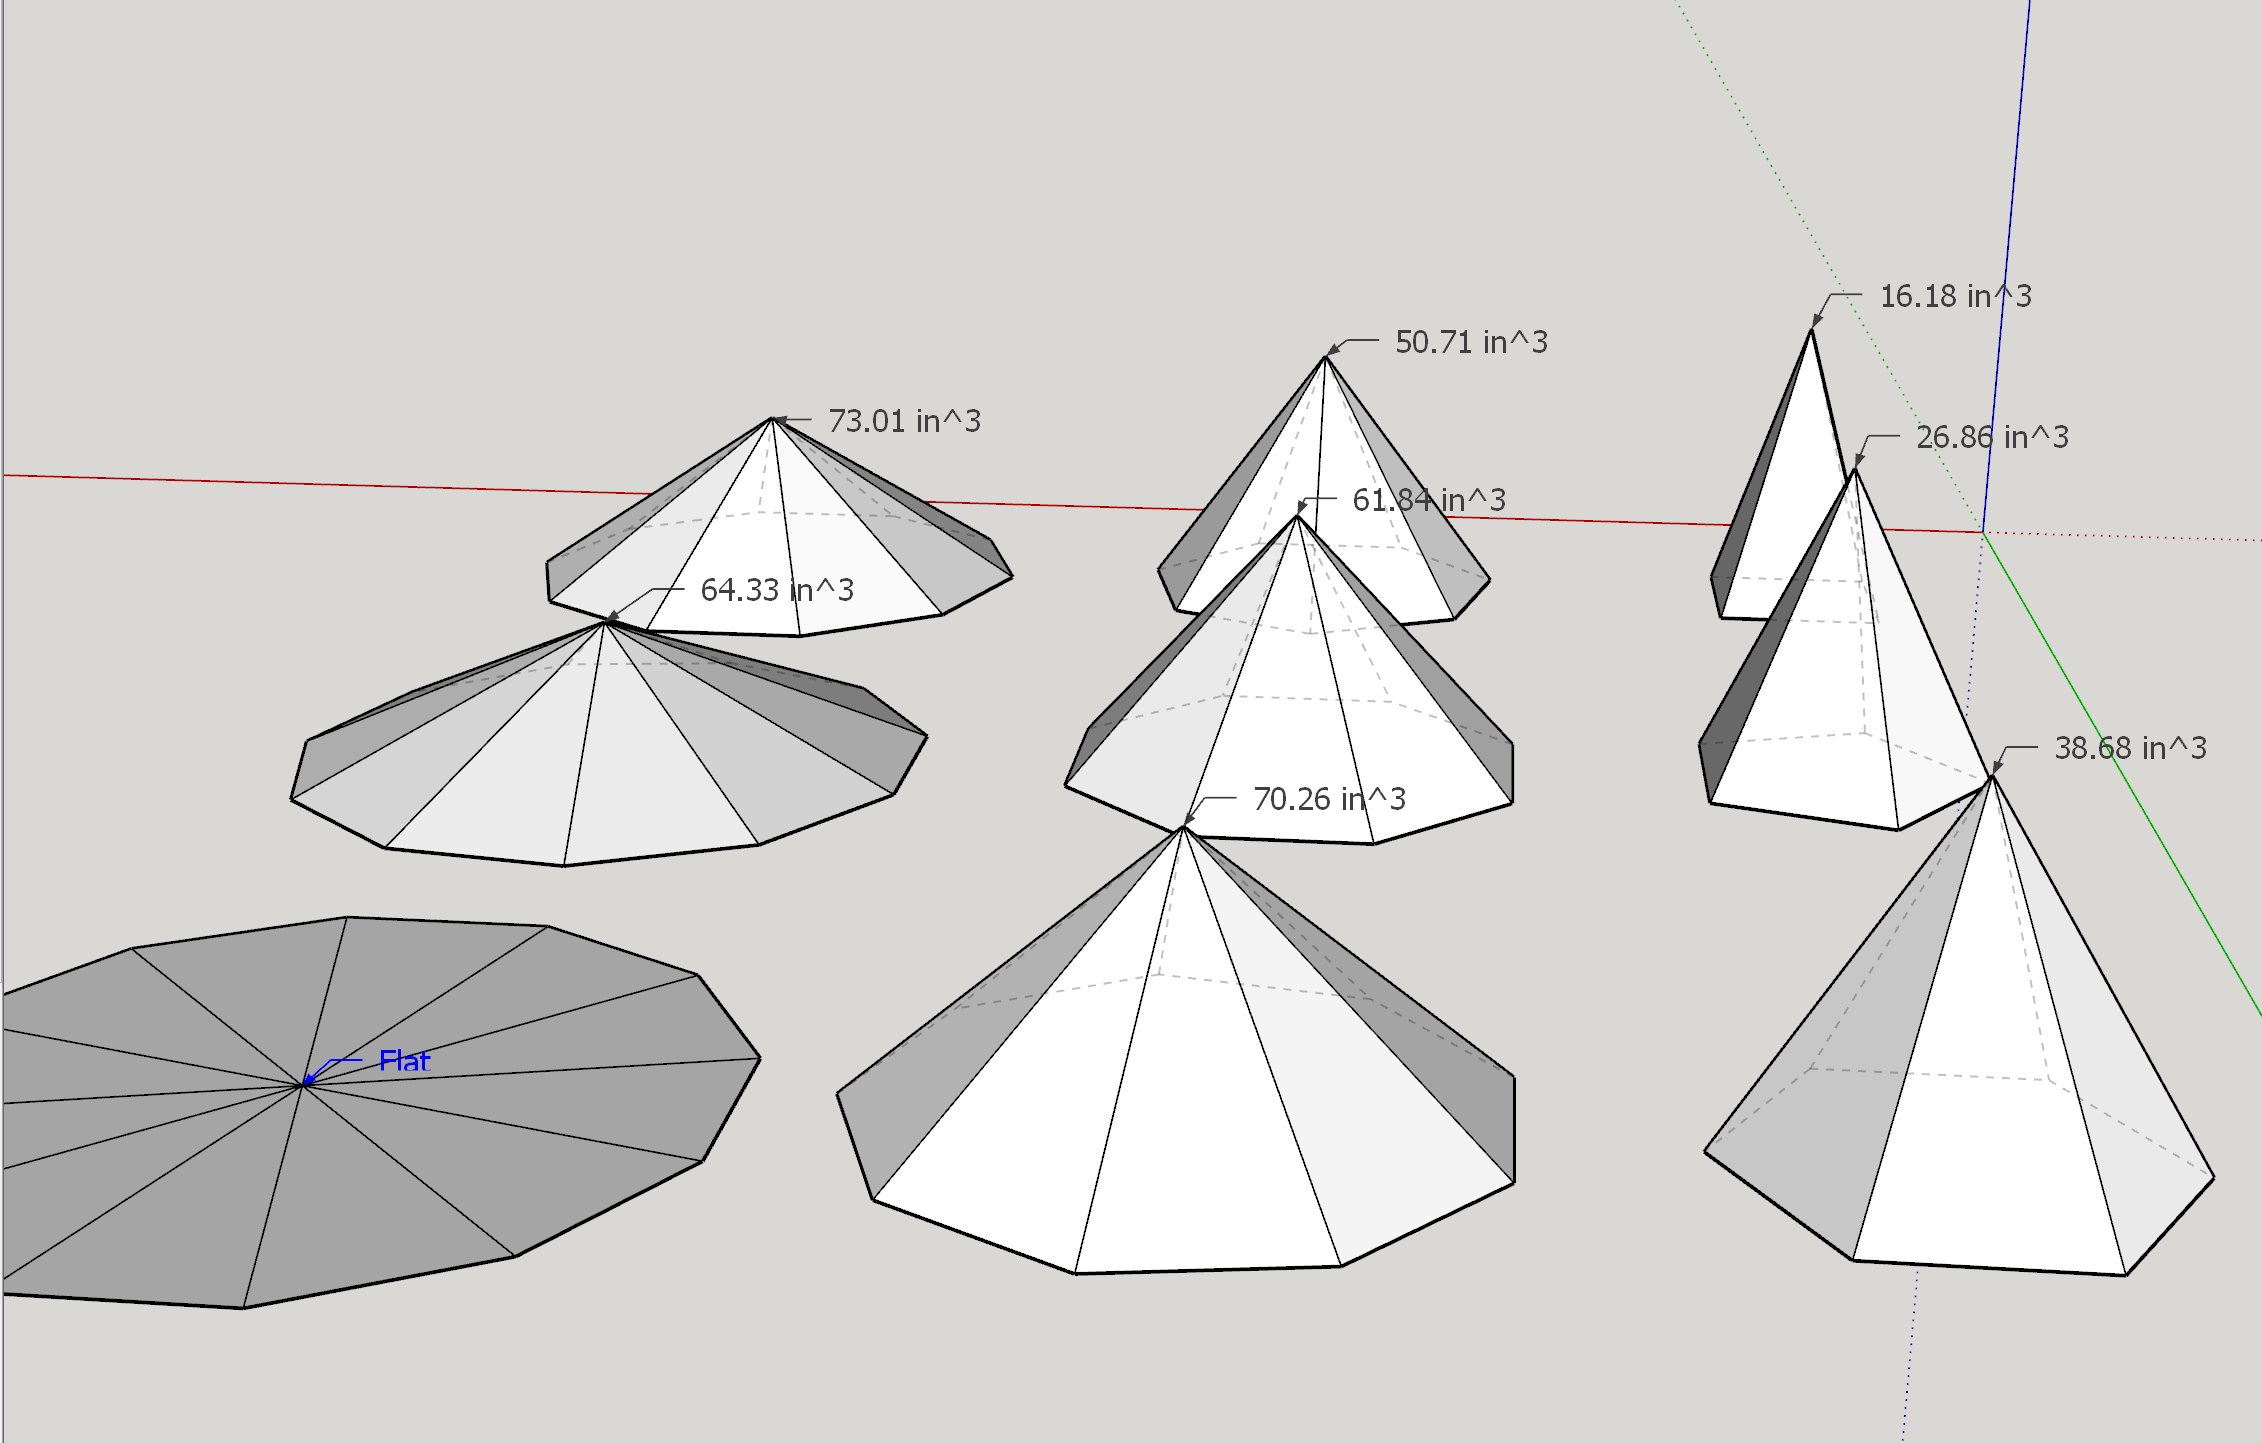 3d rendering of the possible pyramids